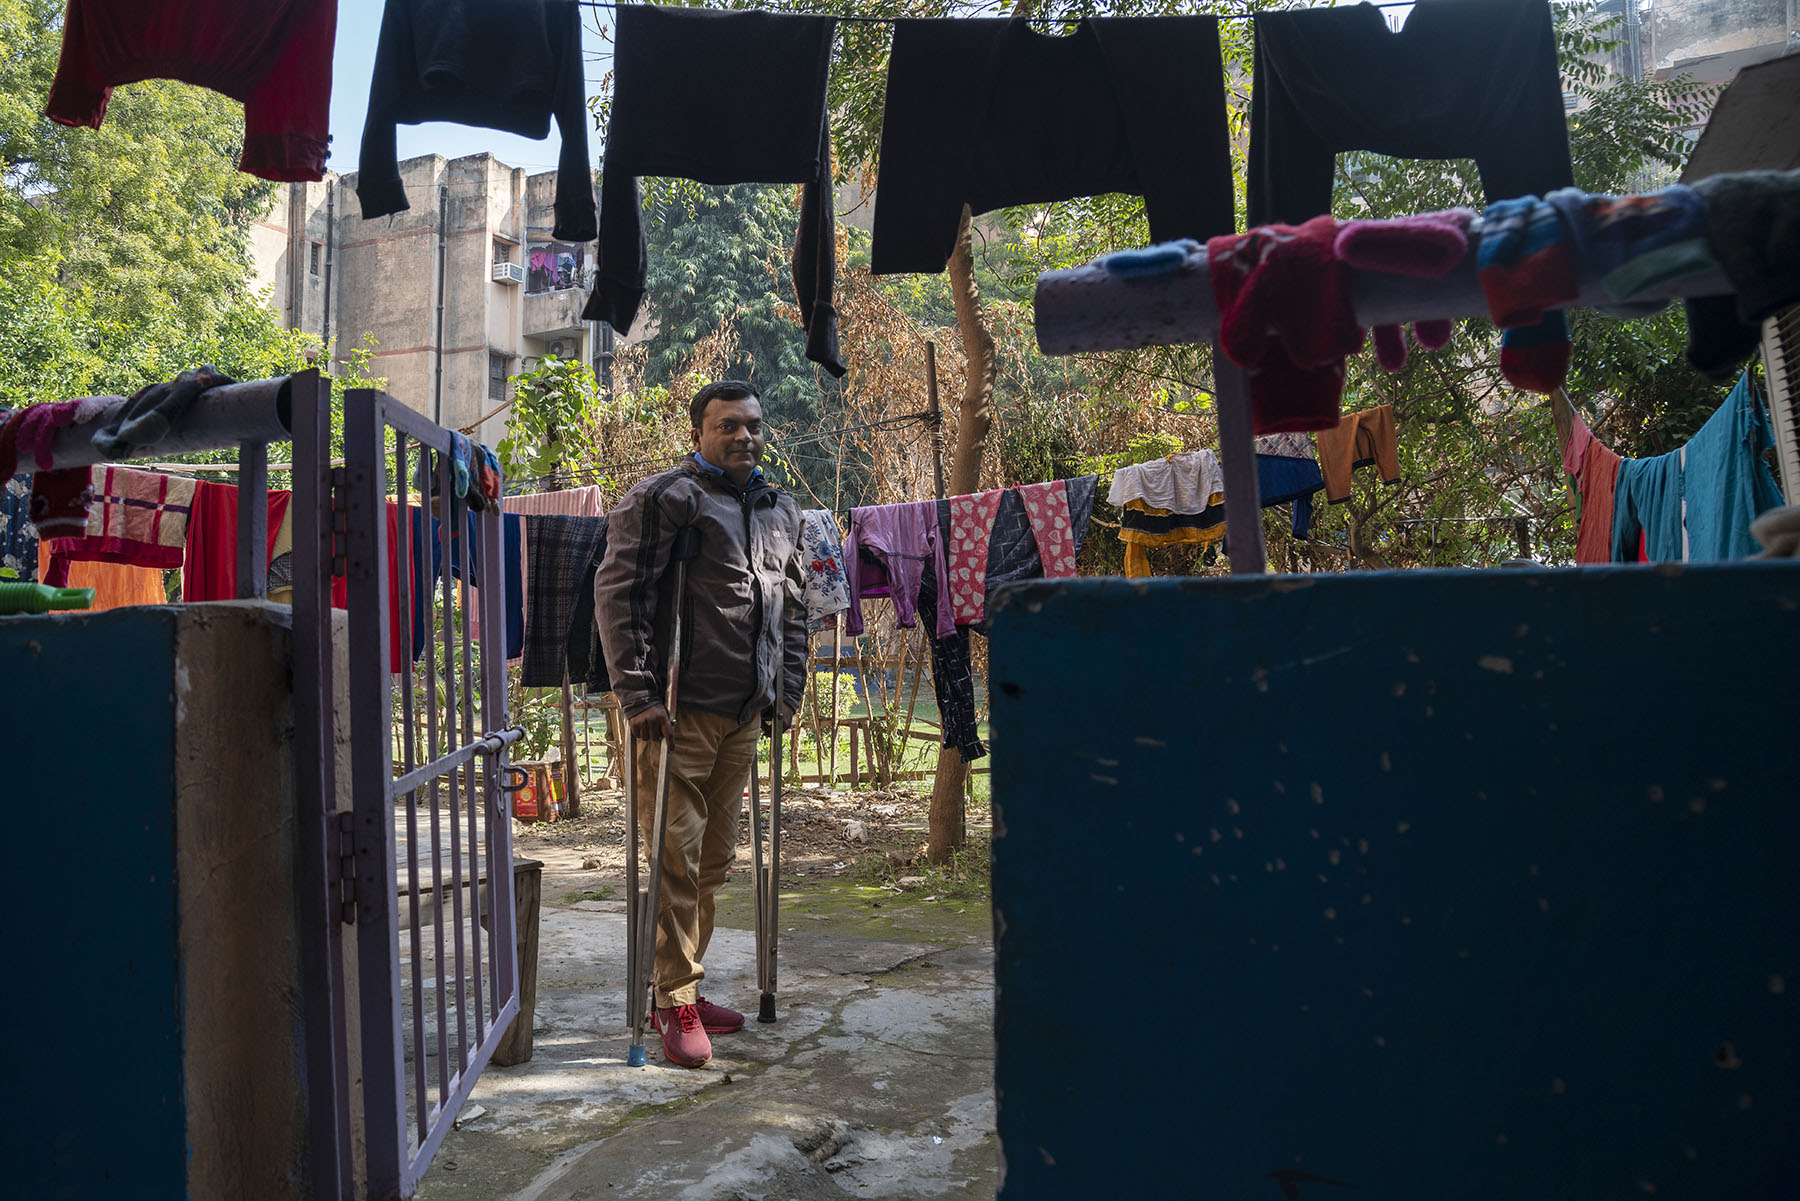 Ameer with his crutches standing outside an open gate, surrounded by washed clothes hanging on clotheslines